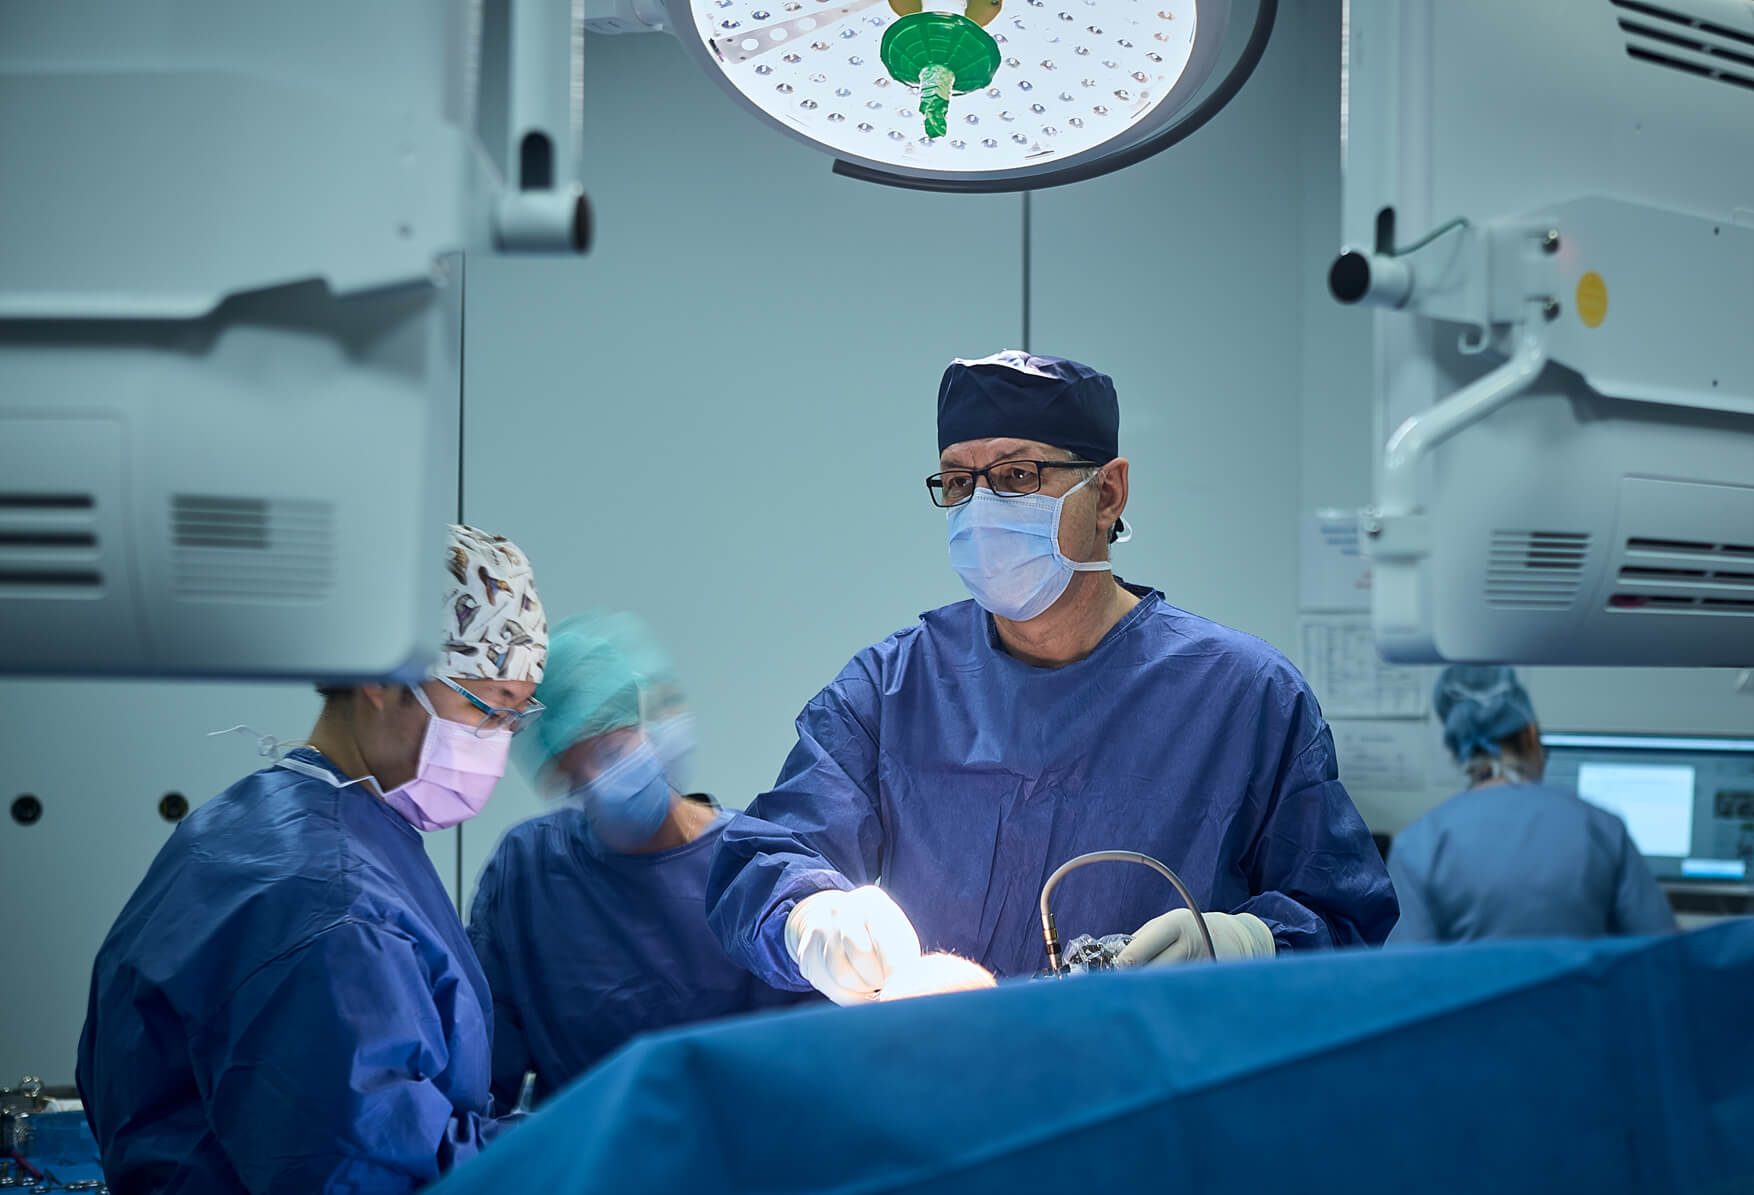 Dr. Ioan Dunca performing Athroscopic surgery.